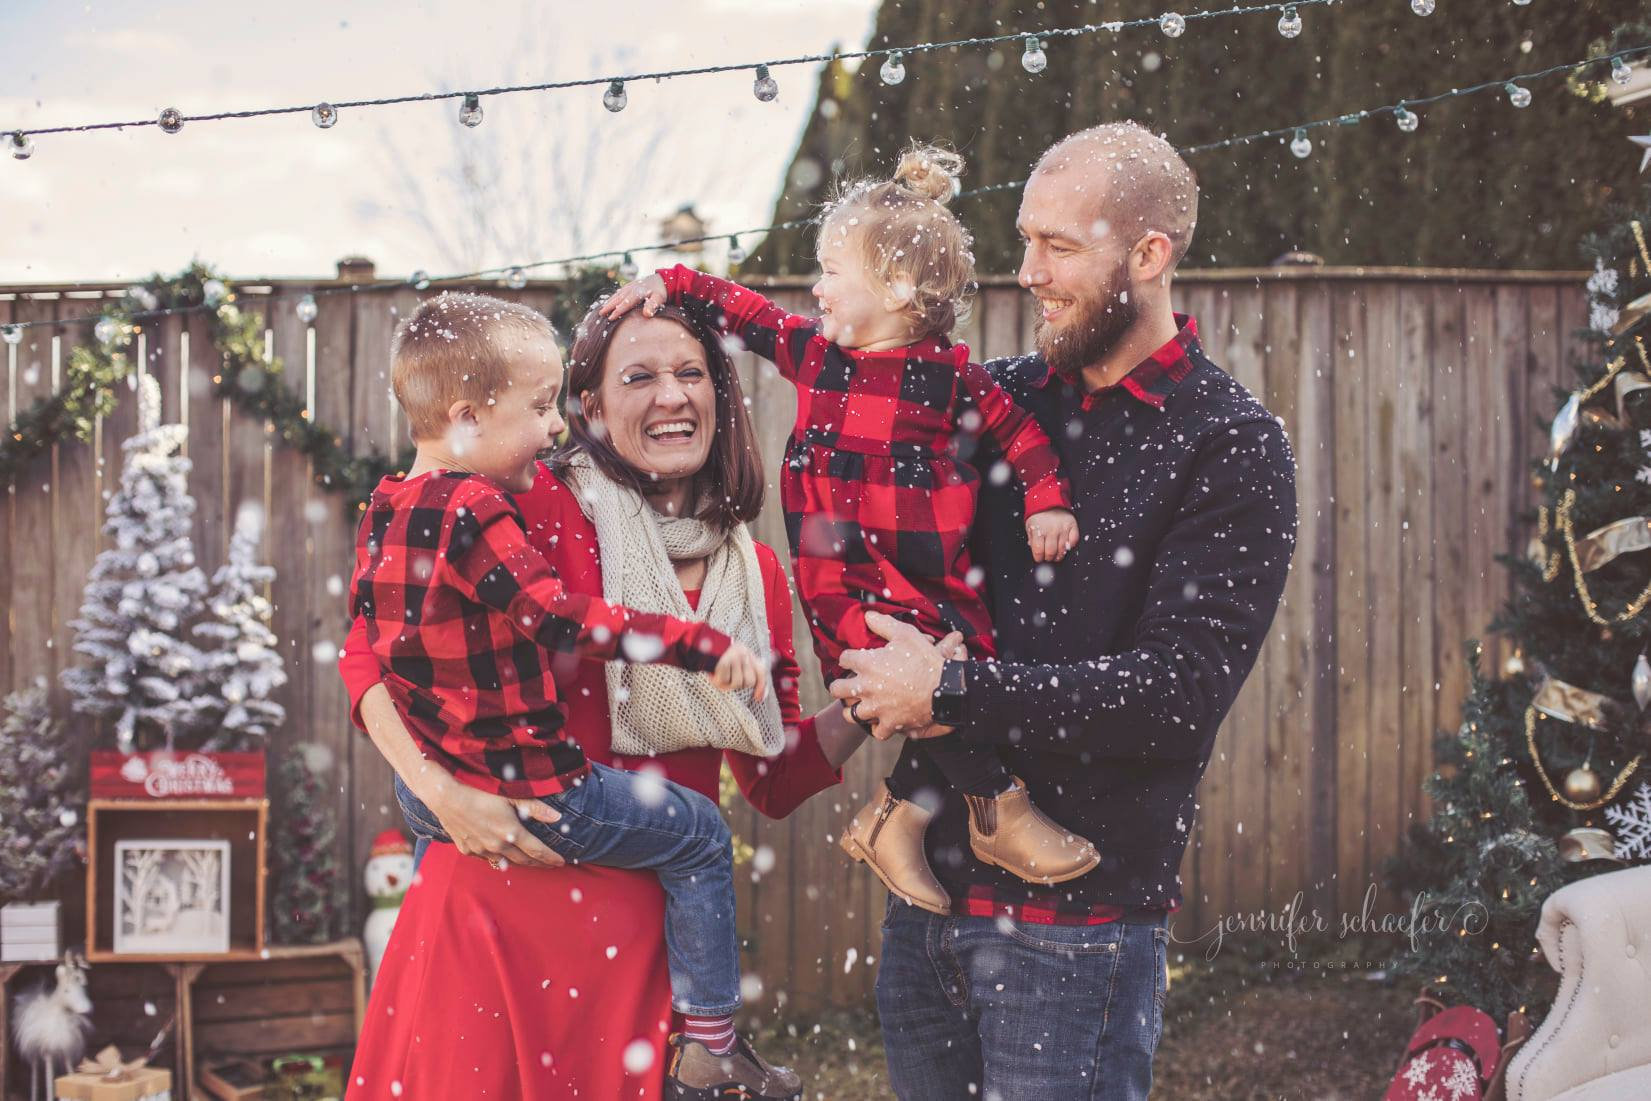 LET IT SNOW HOLIDAY PORTRAITS!!